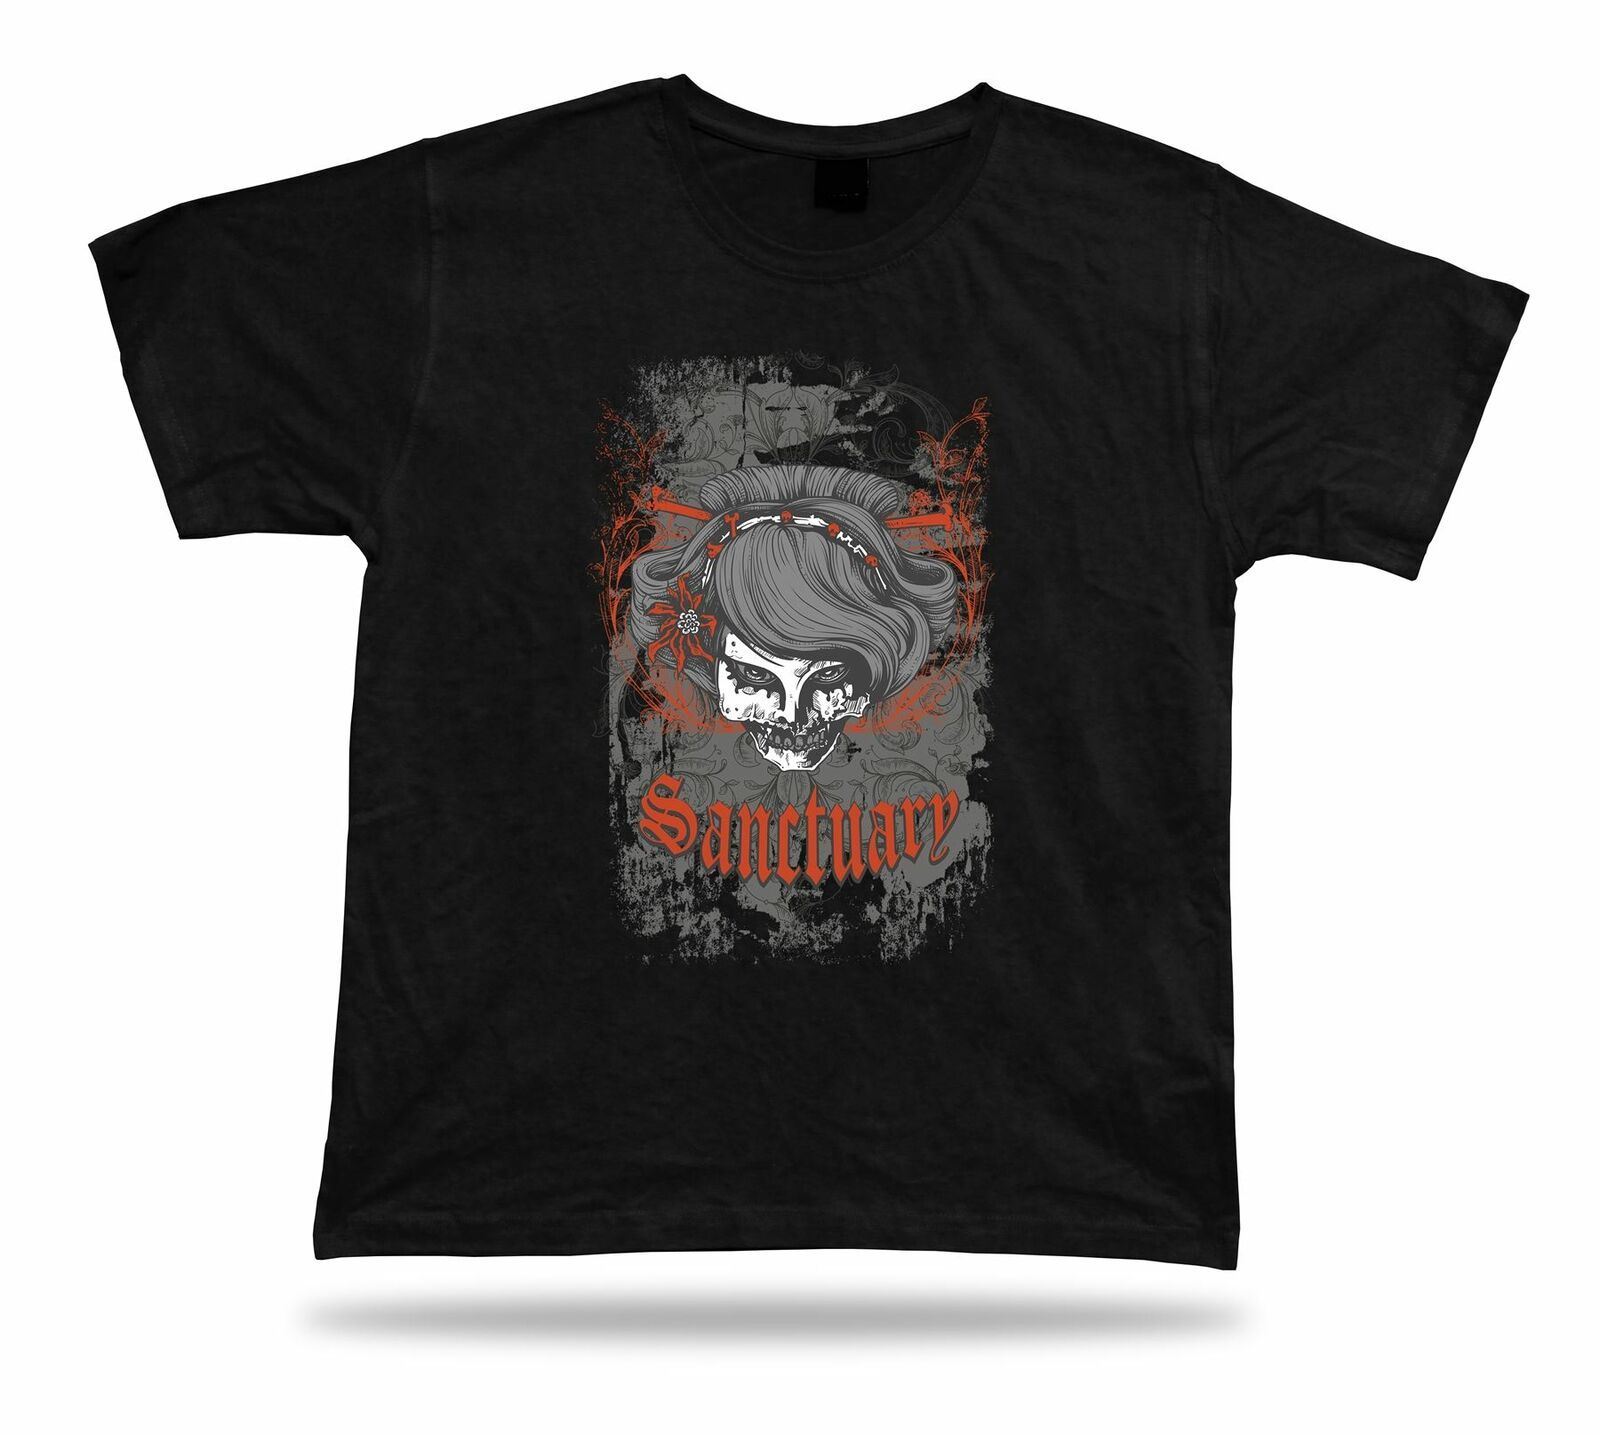 Primary image for Sanctuary Demon Evil Lady unisex T-shirt tee modern design special gift apparel